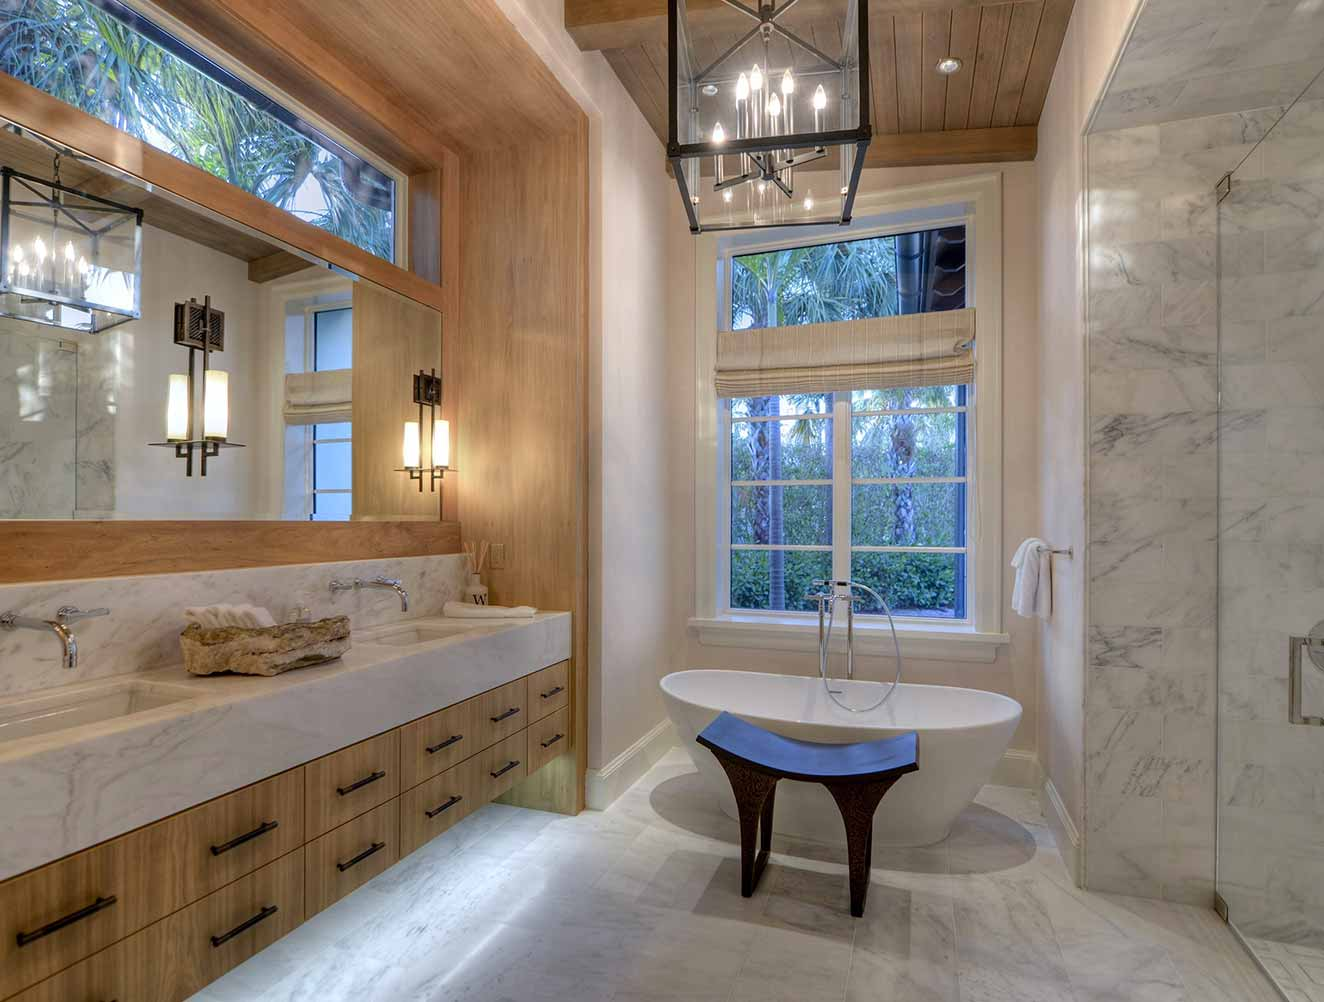 Master Bathroom at Little Harbour Residence in Naples Florida, single family home designed by Kukk Architecture & Design Naples Architecture Firm